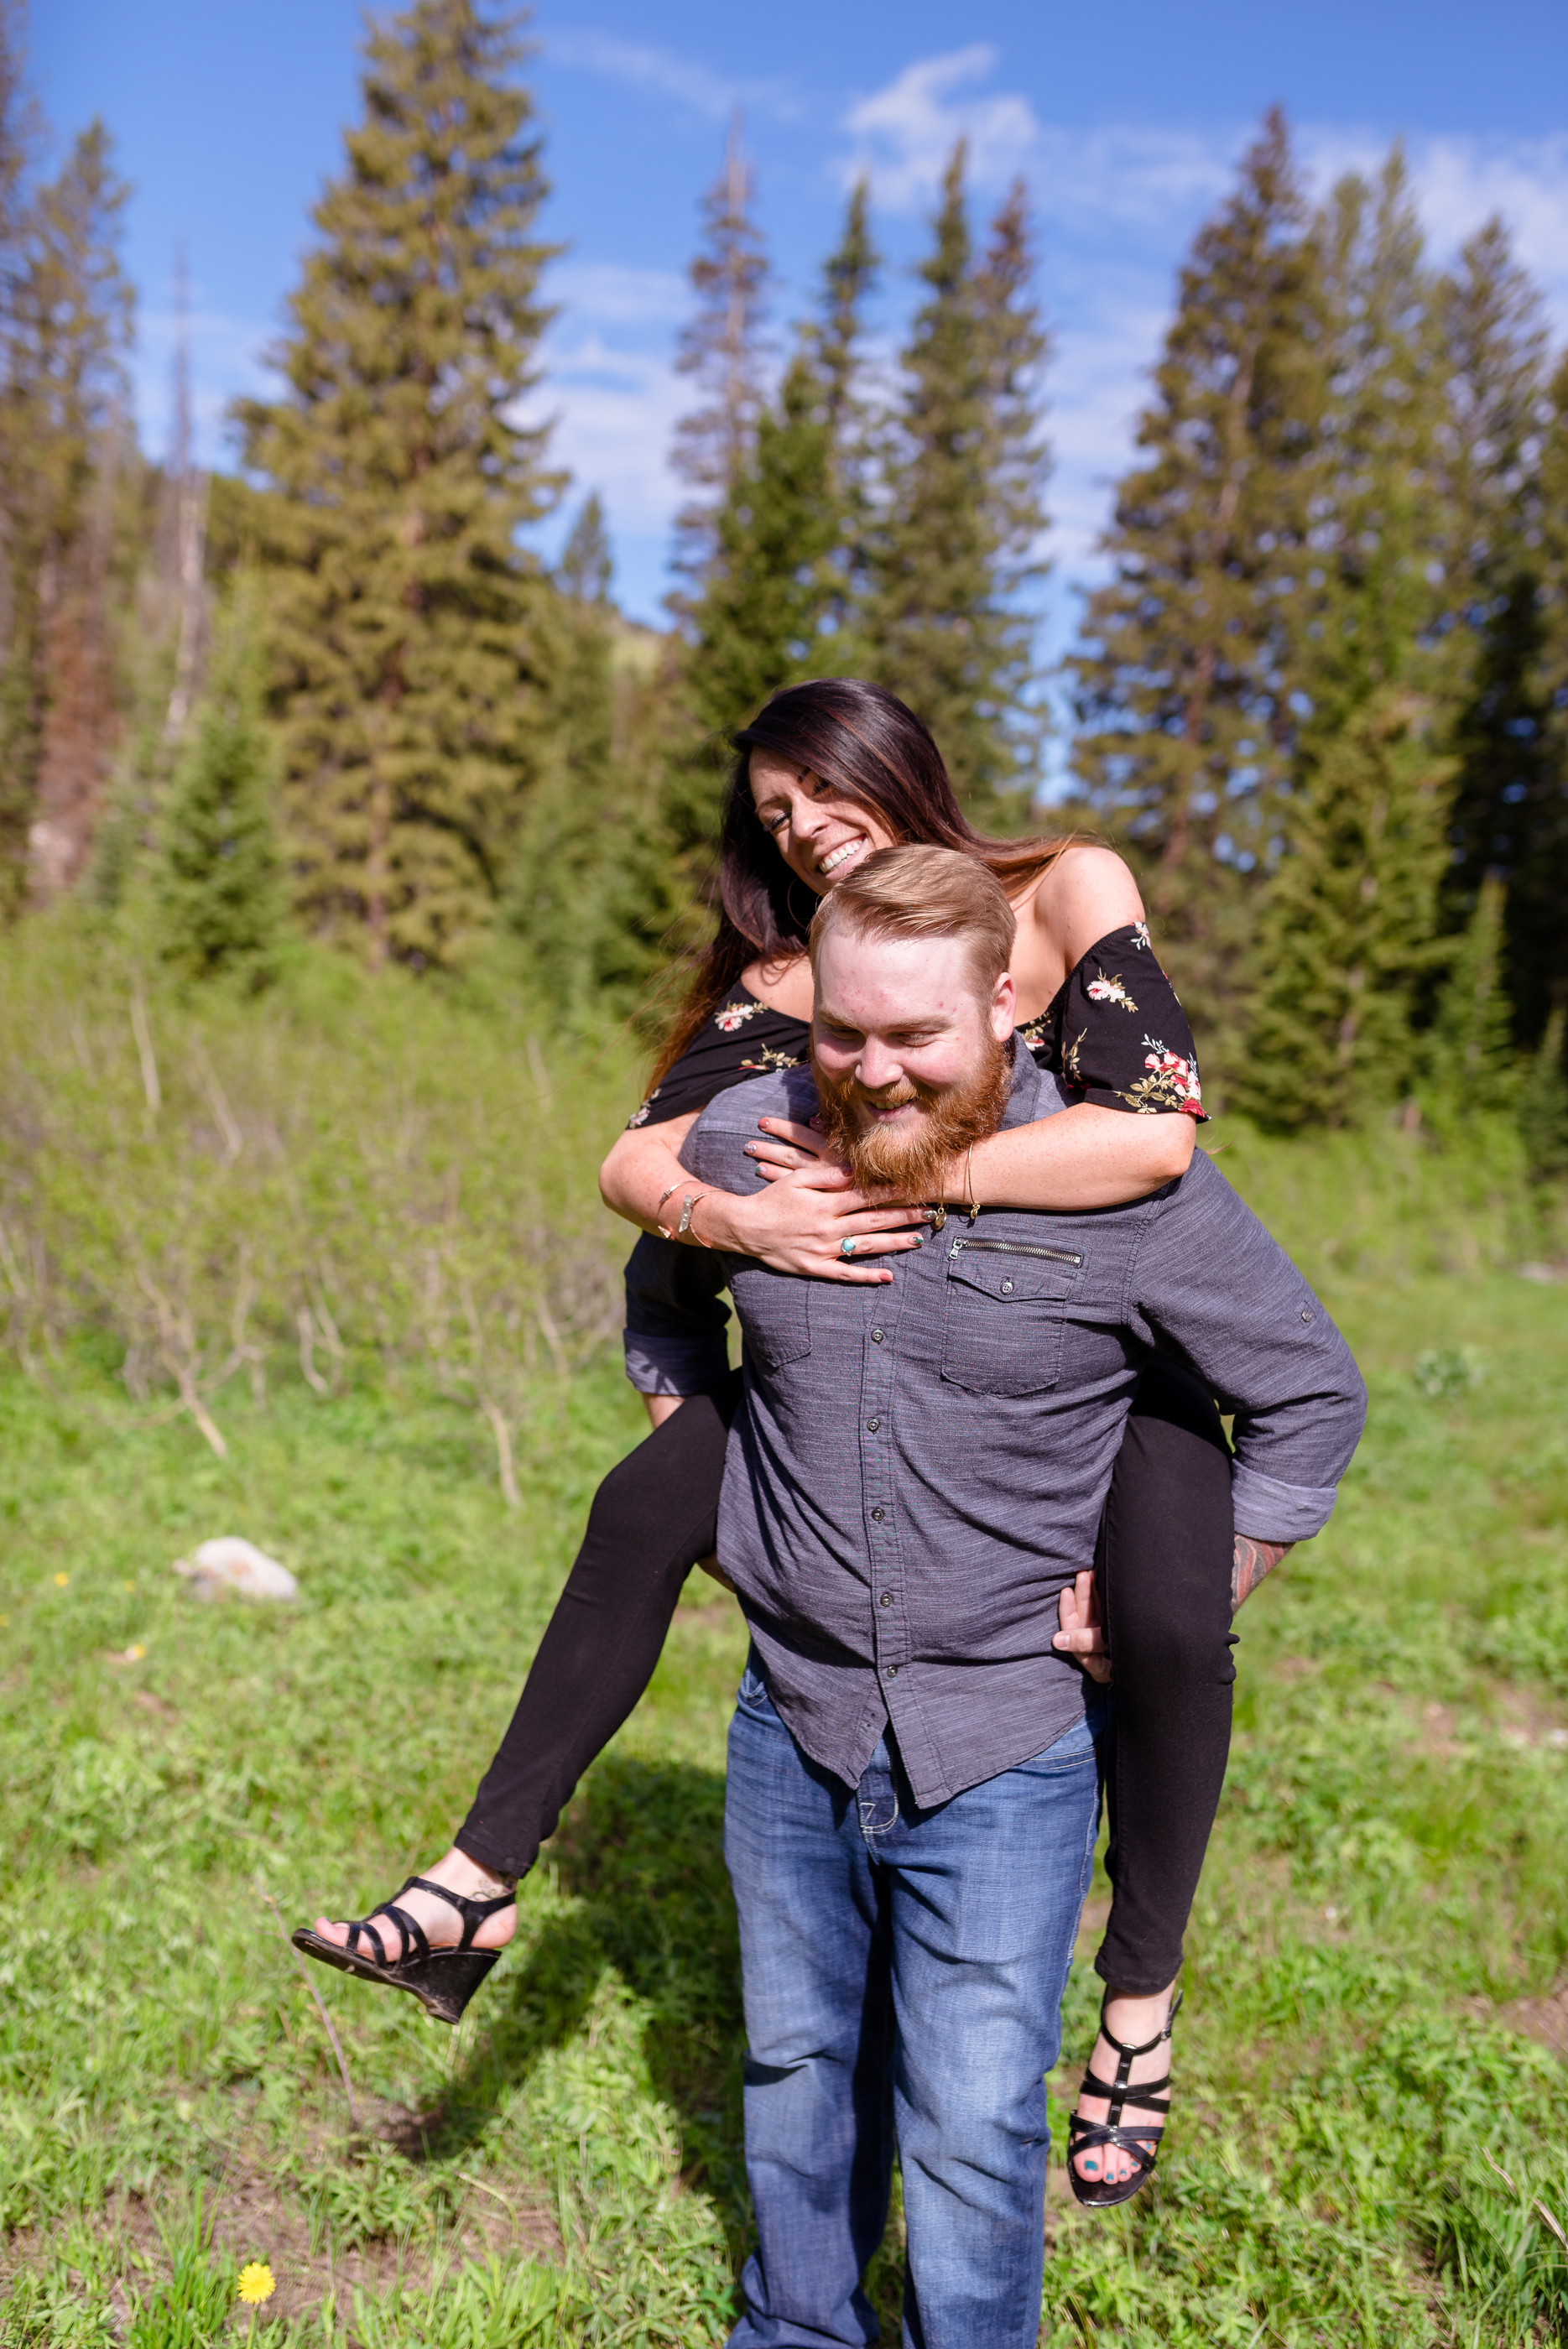 Pig back rides through a sunlit meadow. Morning engagement session in the Salt Lake mountains. Engagement session at Jordan Pines Campground in Big Cottonwood Canyon.